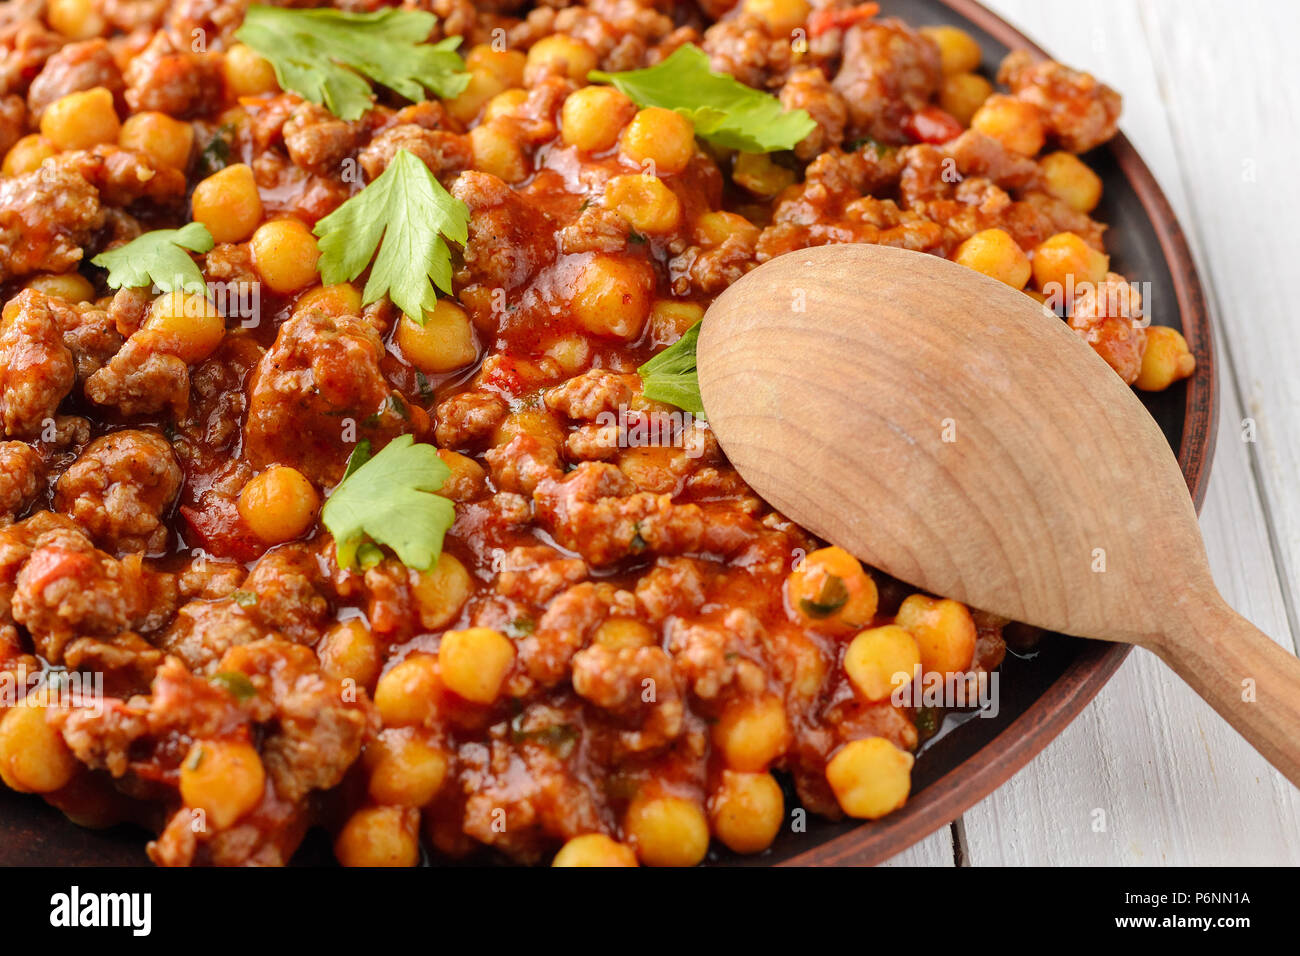 Traditional Cuisine Mexican Chili With Chickpeas Bi And Wooden Spoon On A Wooden Table Stock Photo Alamy